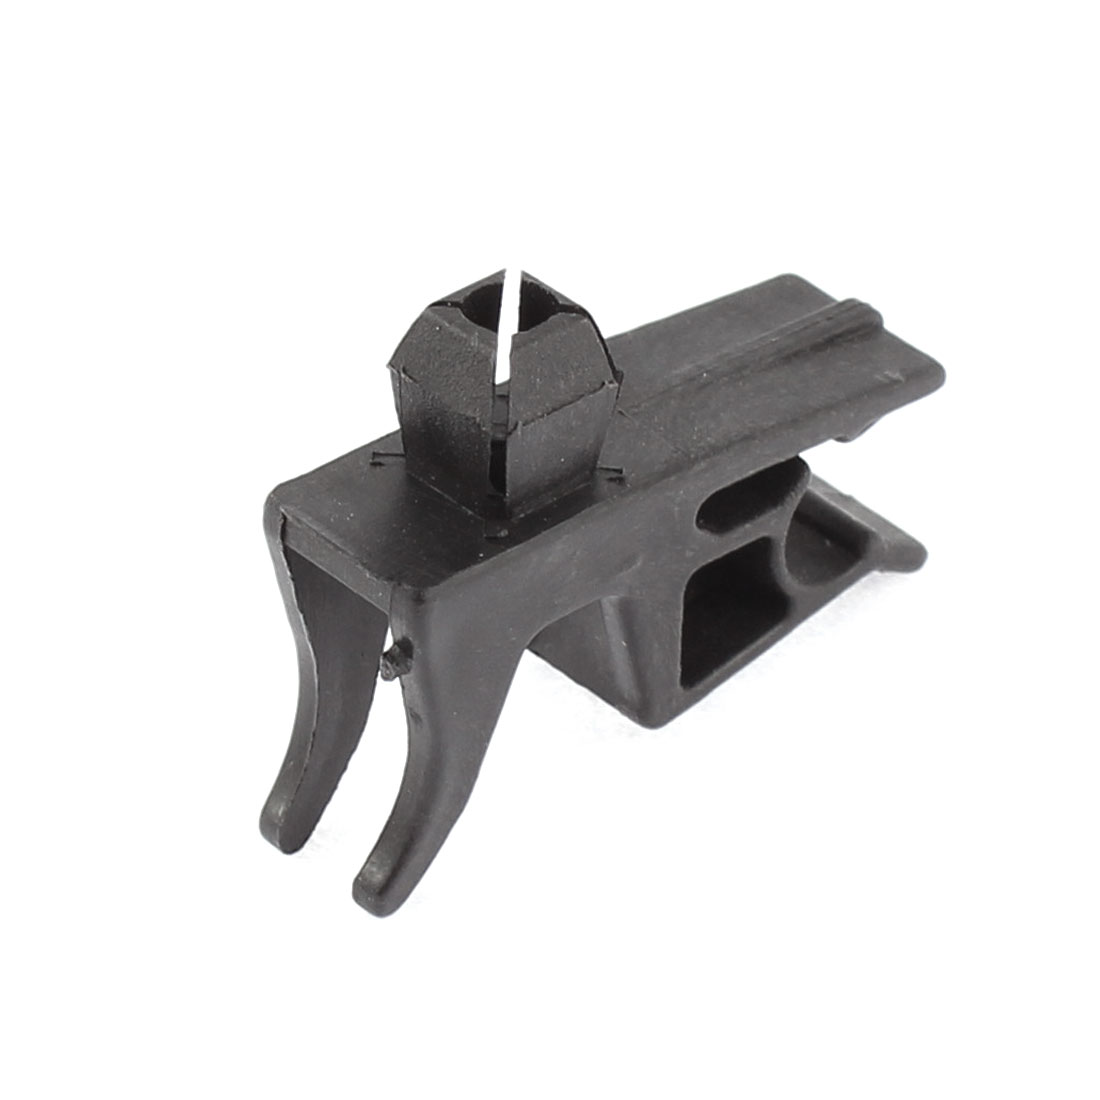 X Autohaux Truck Car Bonnet Hood Support Prop Arm Holder Clamps Clips For 8Mm Dia Rod(China (Mainland))